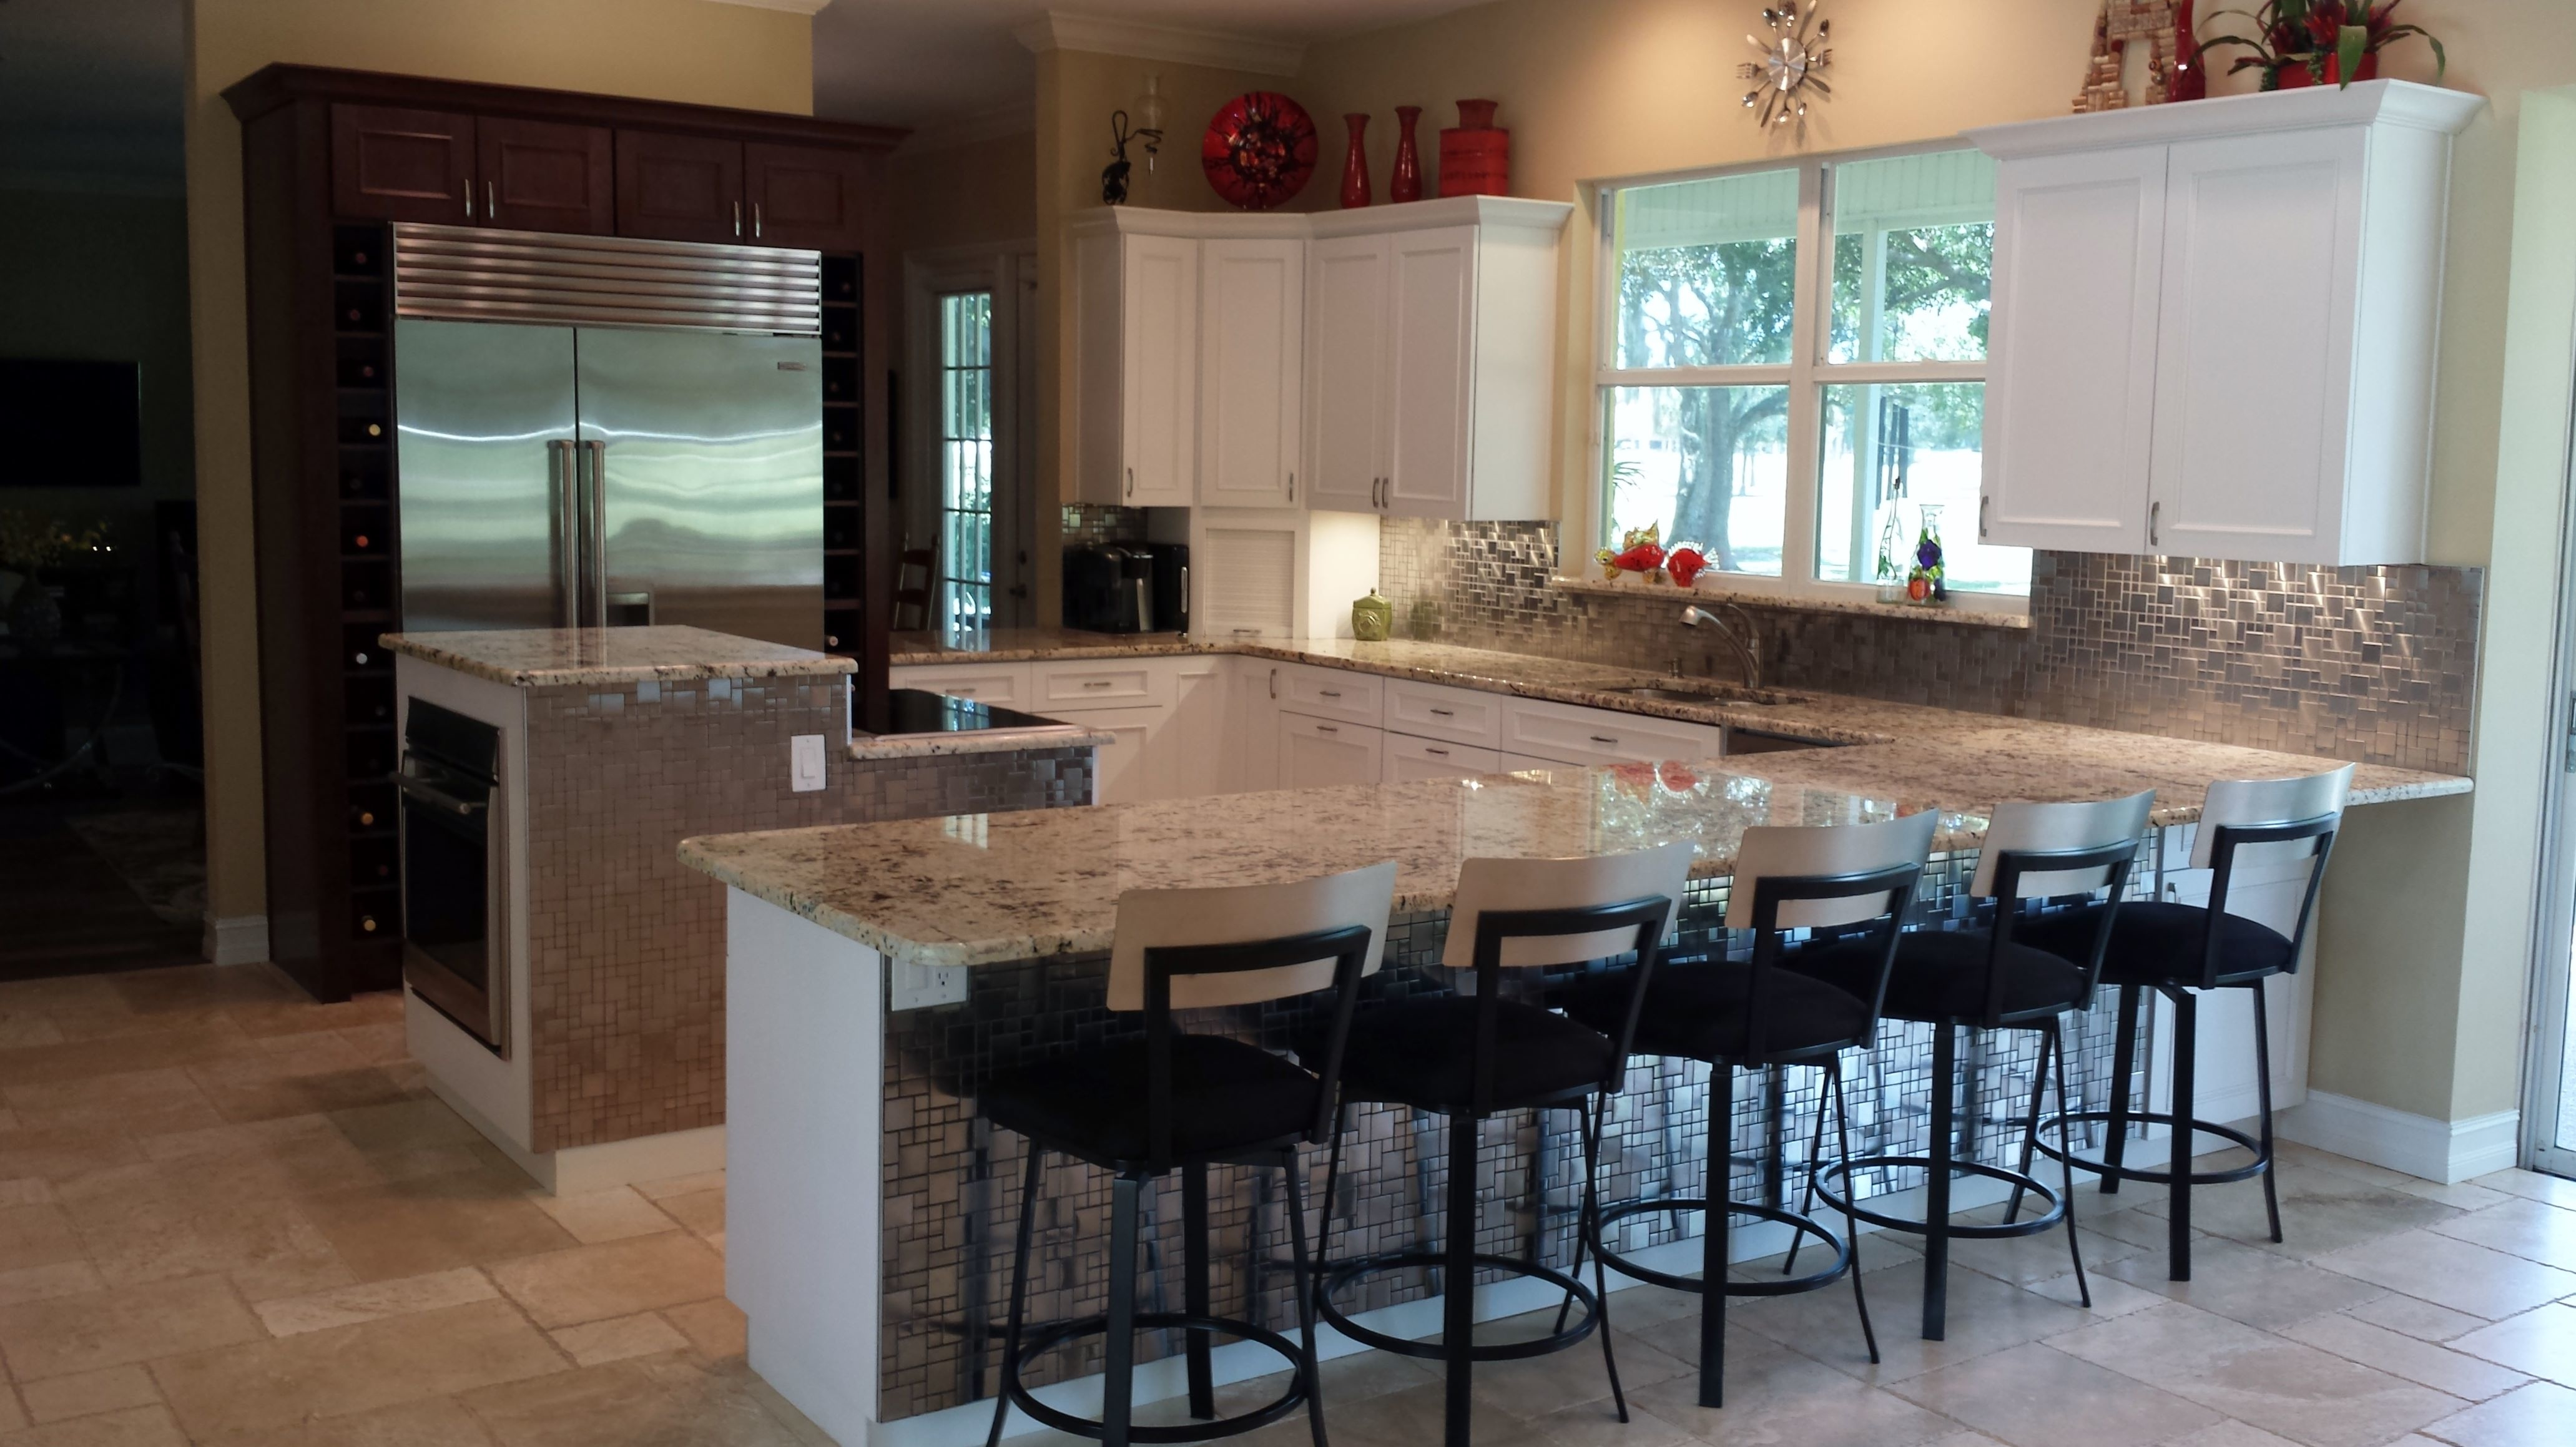 Kitchen cabinets refacing in miami florida - Kitchen Cabinets Refacing In Miami Florida 48